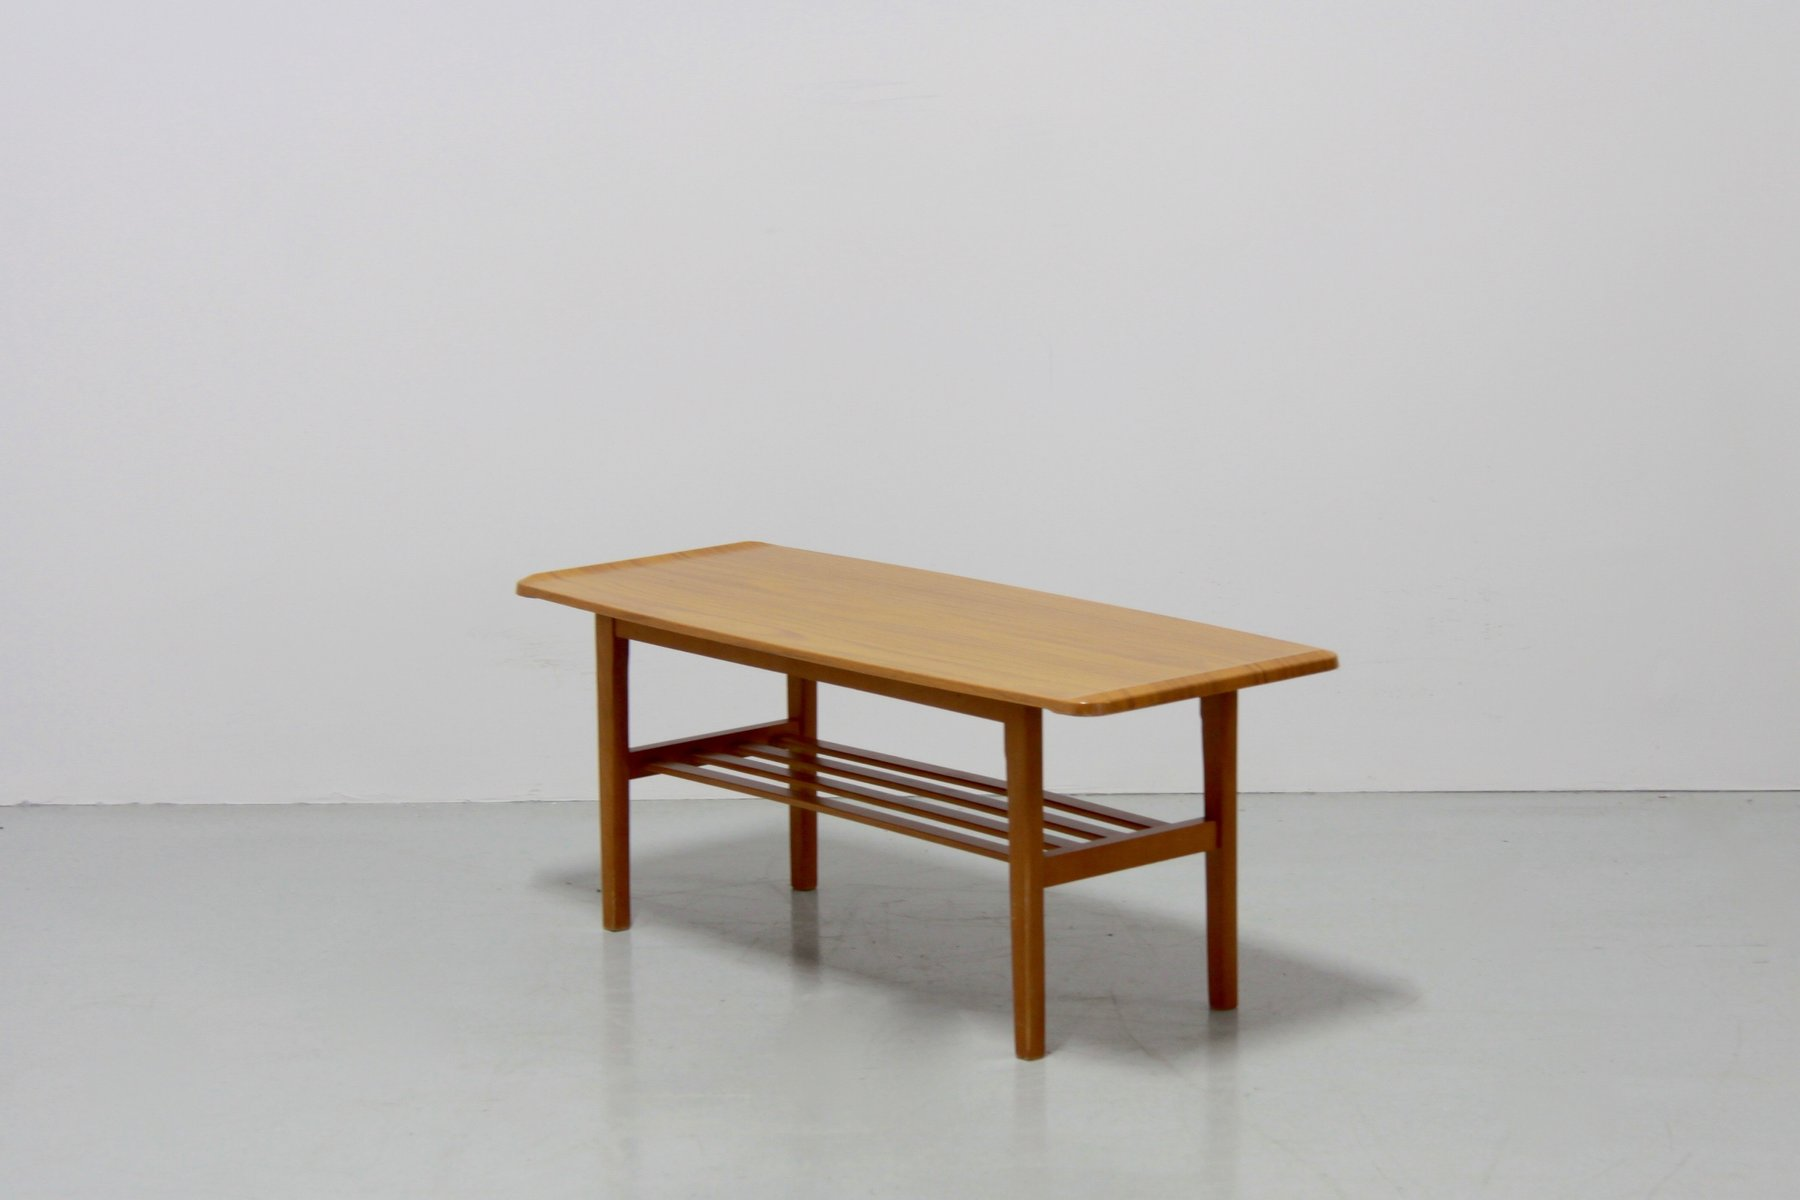 Vintage formica coffee table from formwood 1970s for sale for Formica table